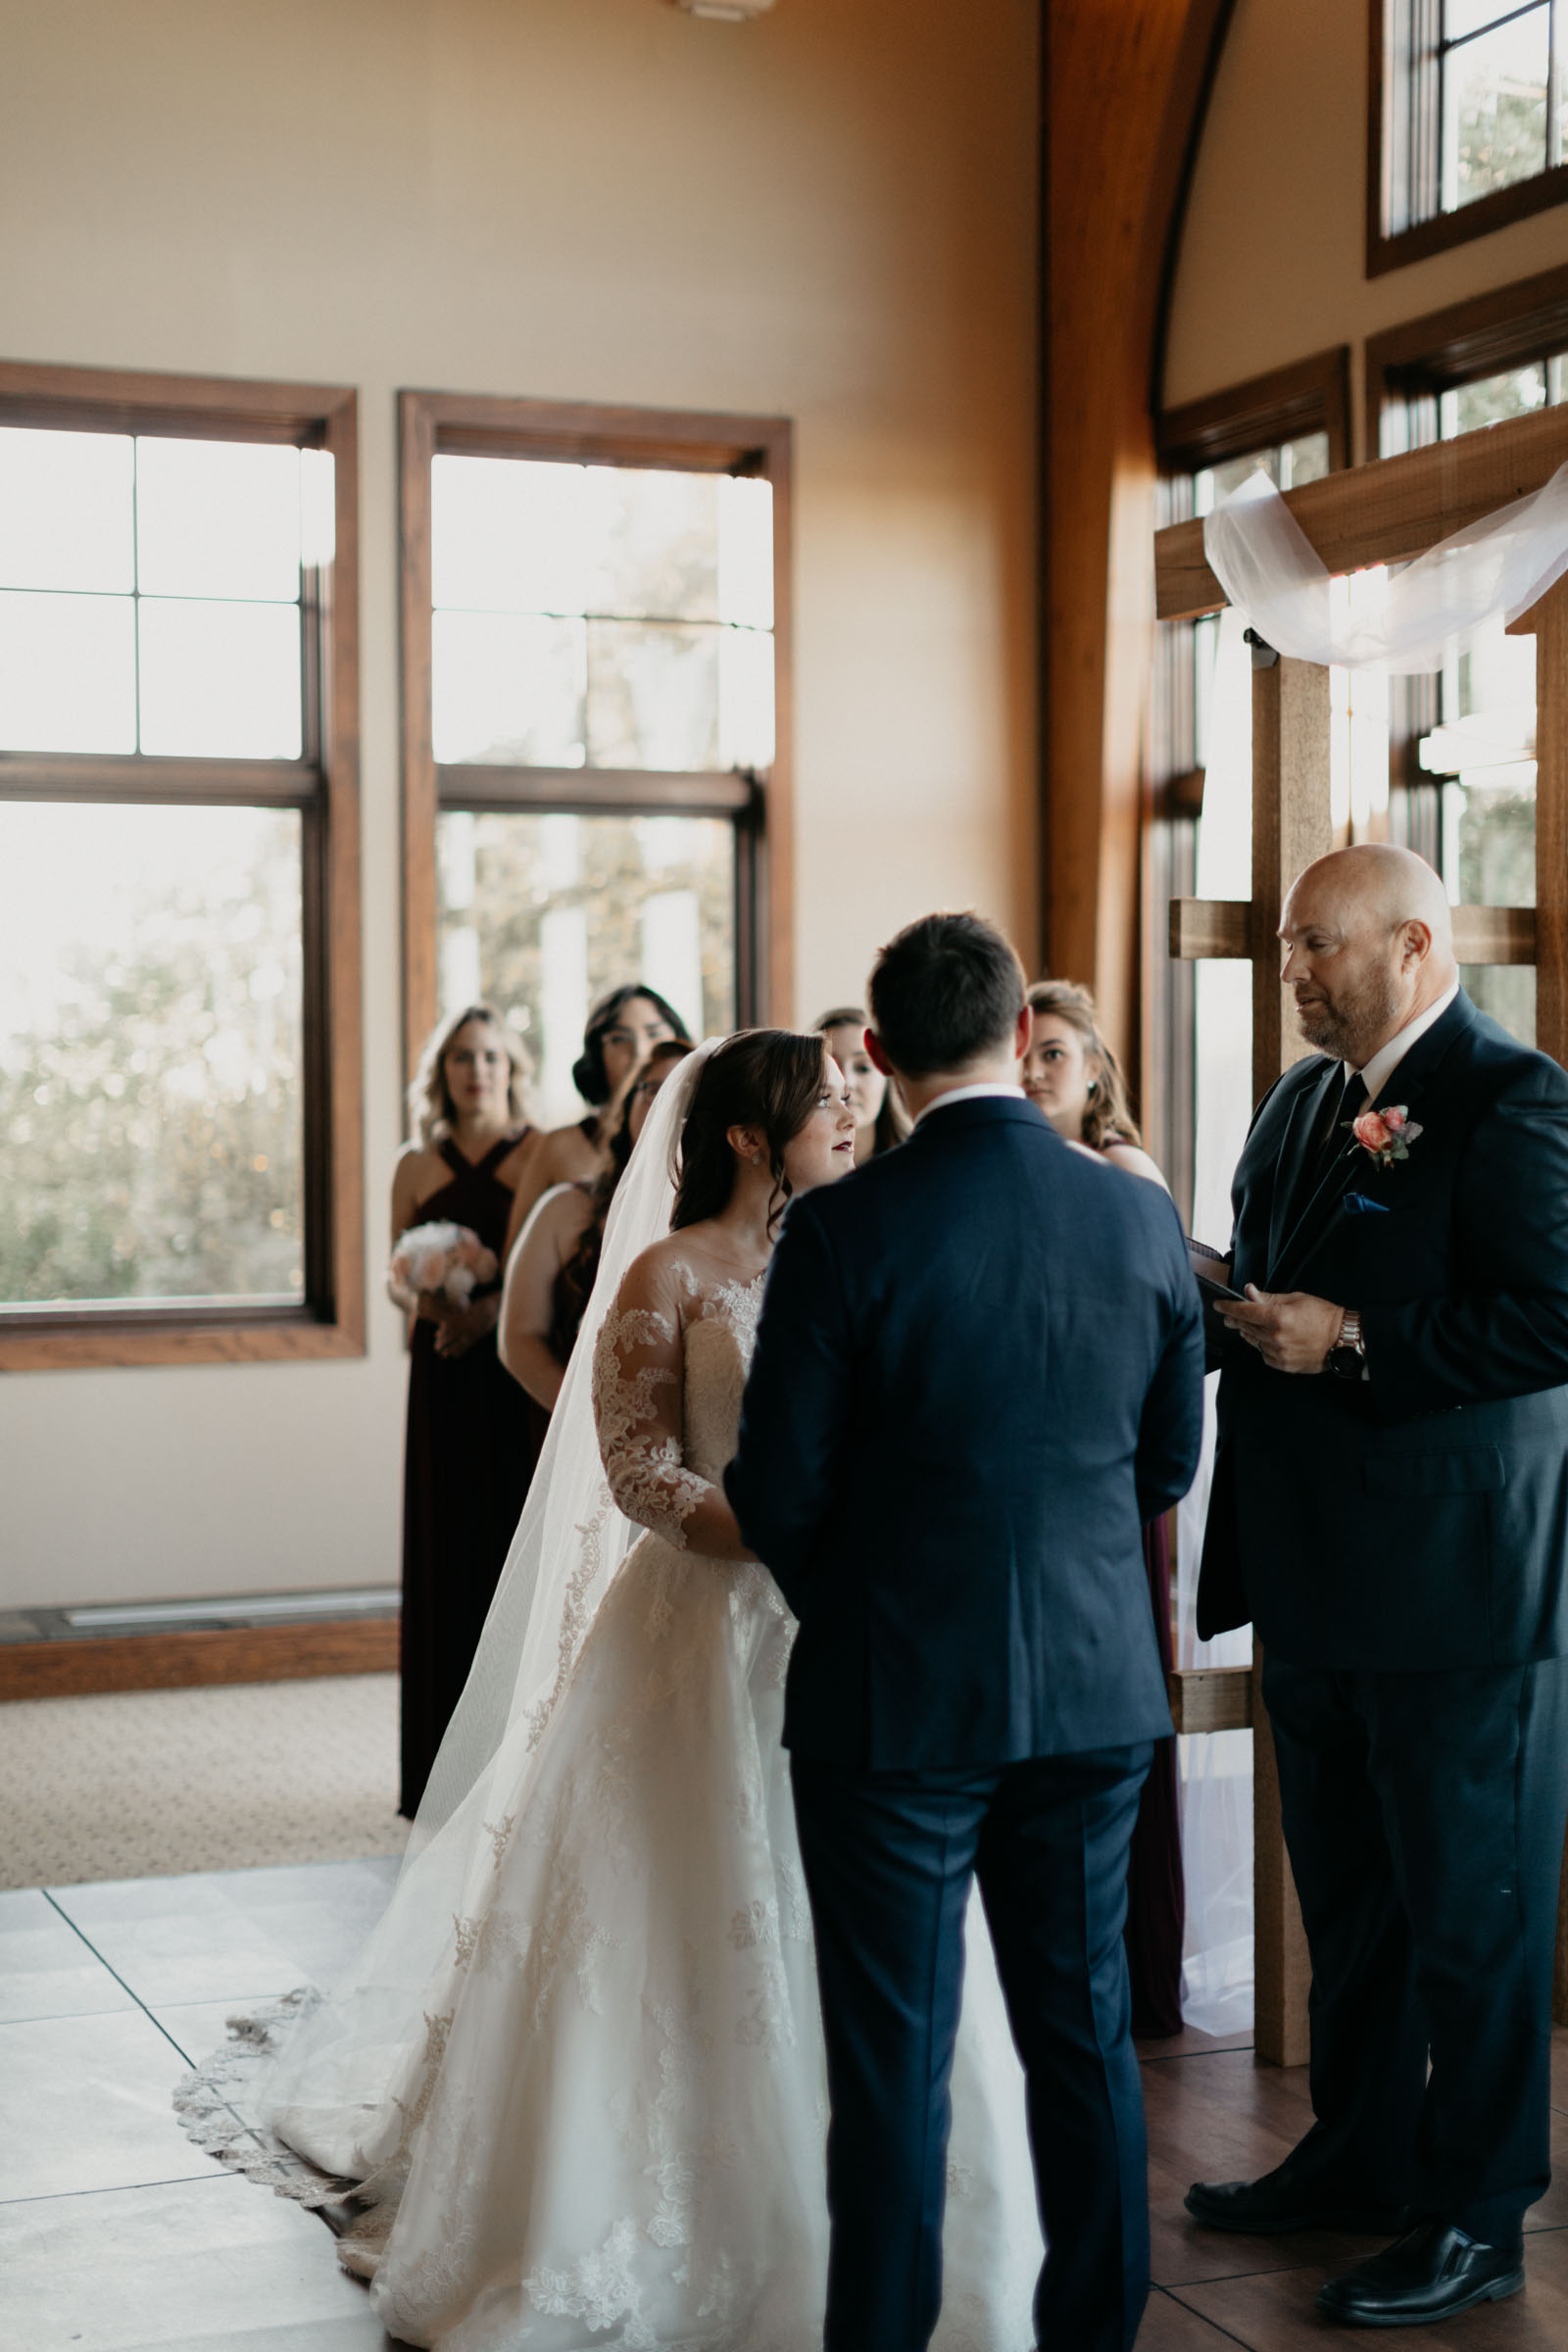 bride and groom exchanging vows during their traditional wedding day